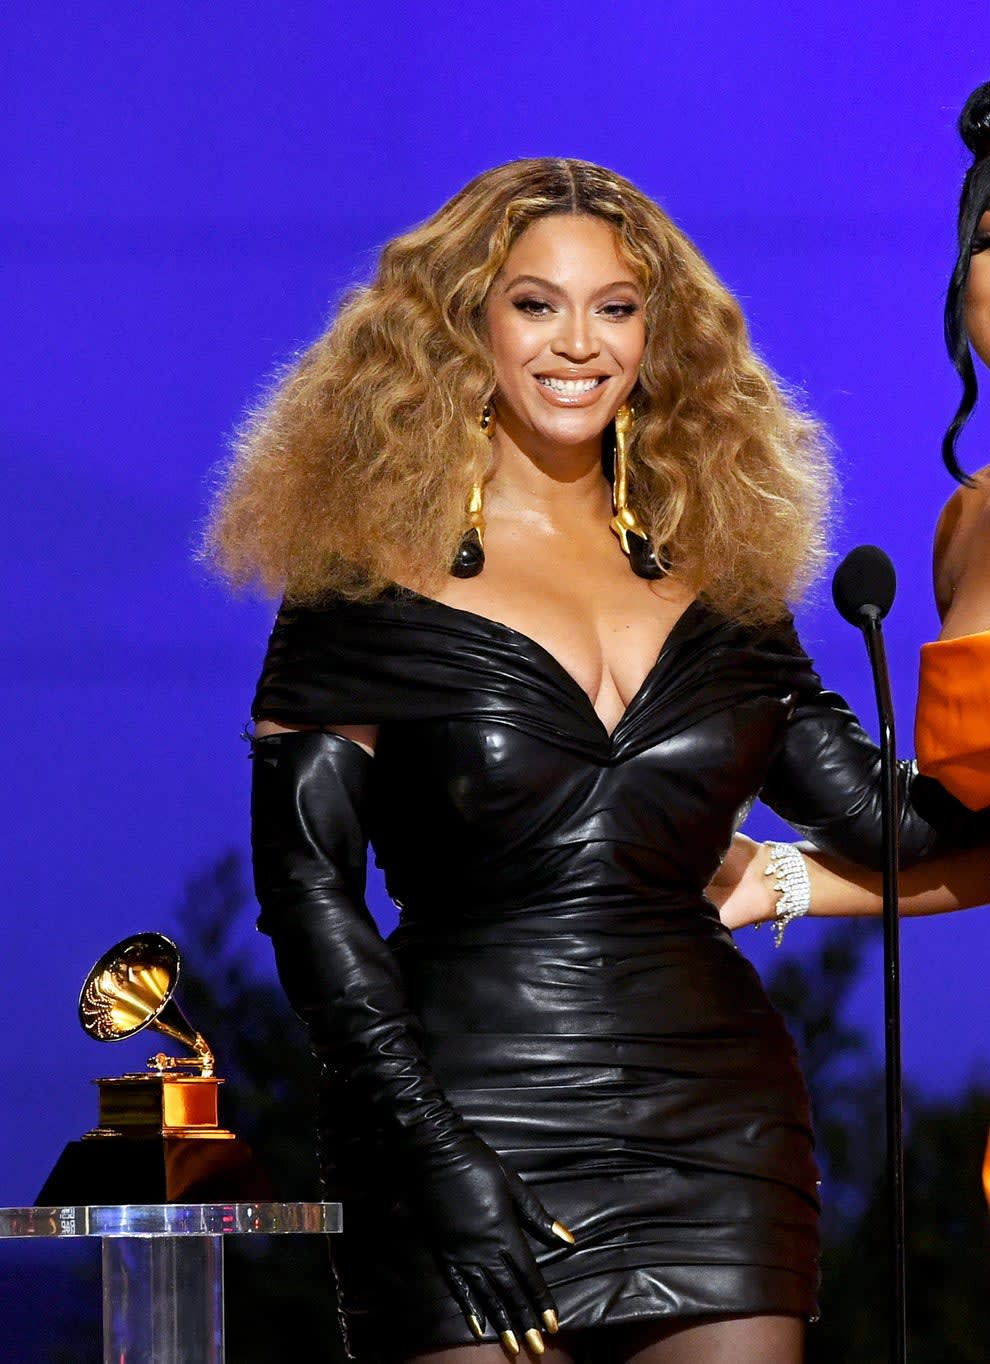 Beyoncé at the Grammy Awards in 2021